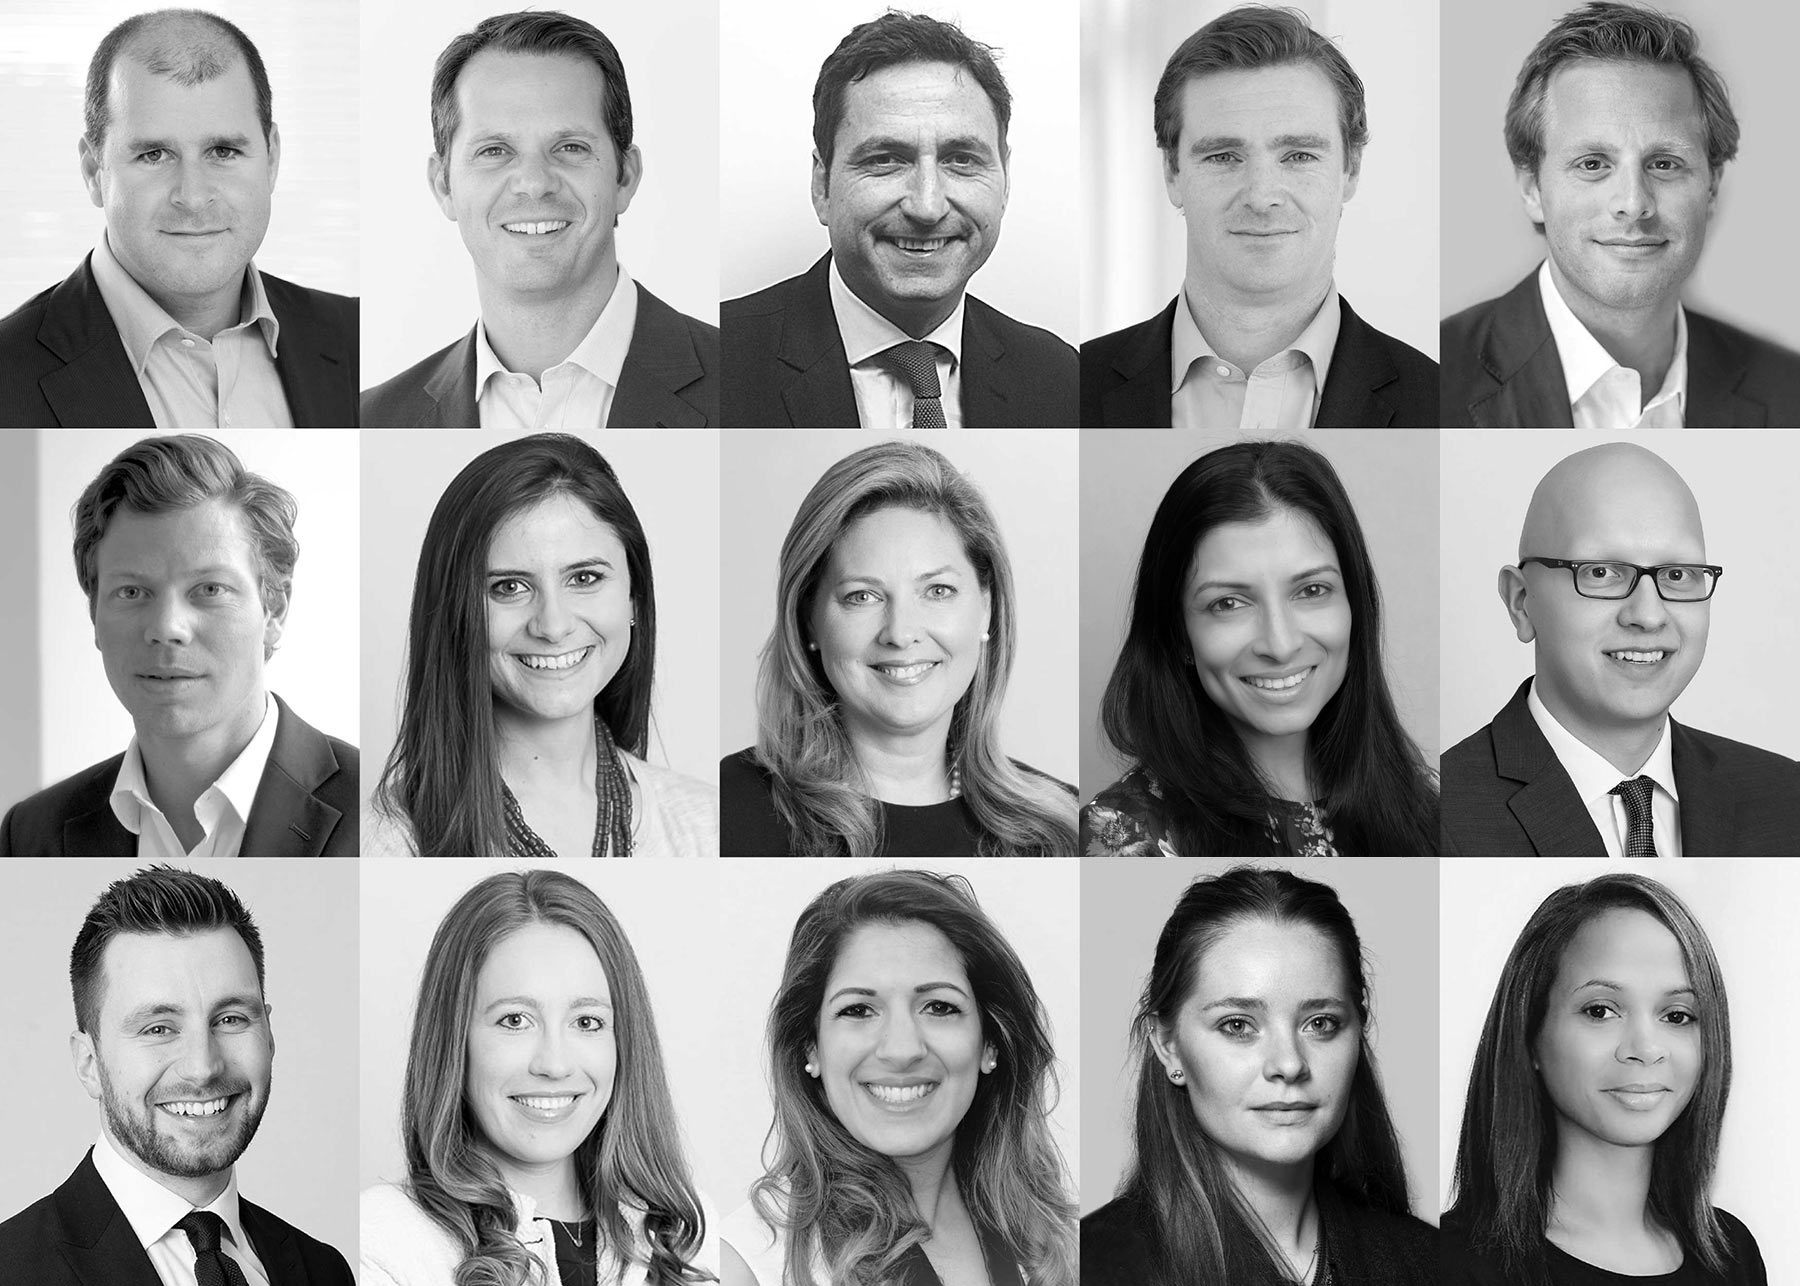 Crosstree's team combines a mix of backgrounds, experience and perspective, together with the support and infrastructure of the Waypoint Capital Group, which manages the Bertarelli family's investments.